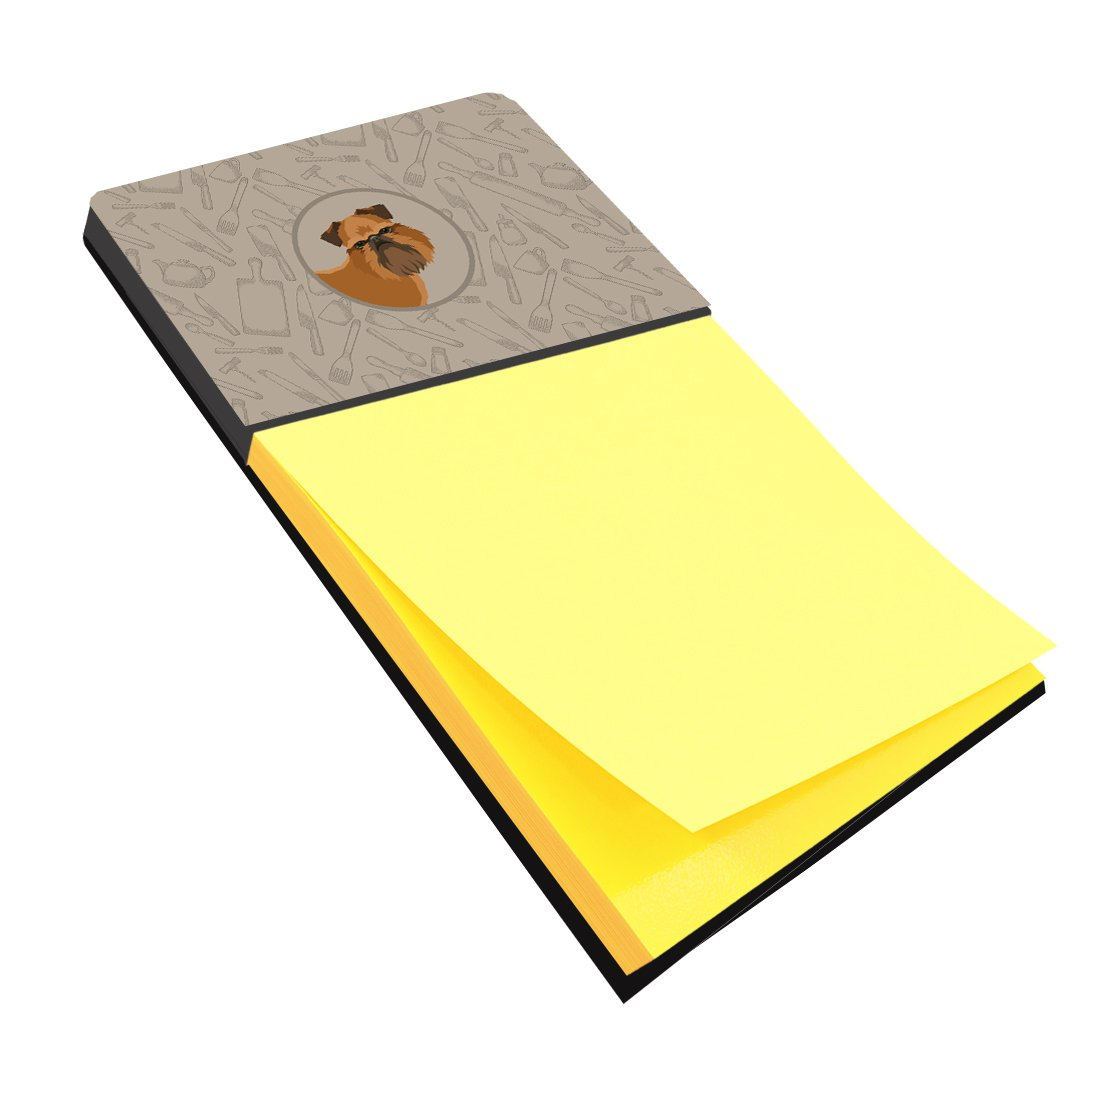 Brussels Griffon In the Kitchen Sticky Note Holder CK2191SN by Caroline's Treasures